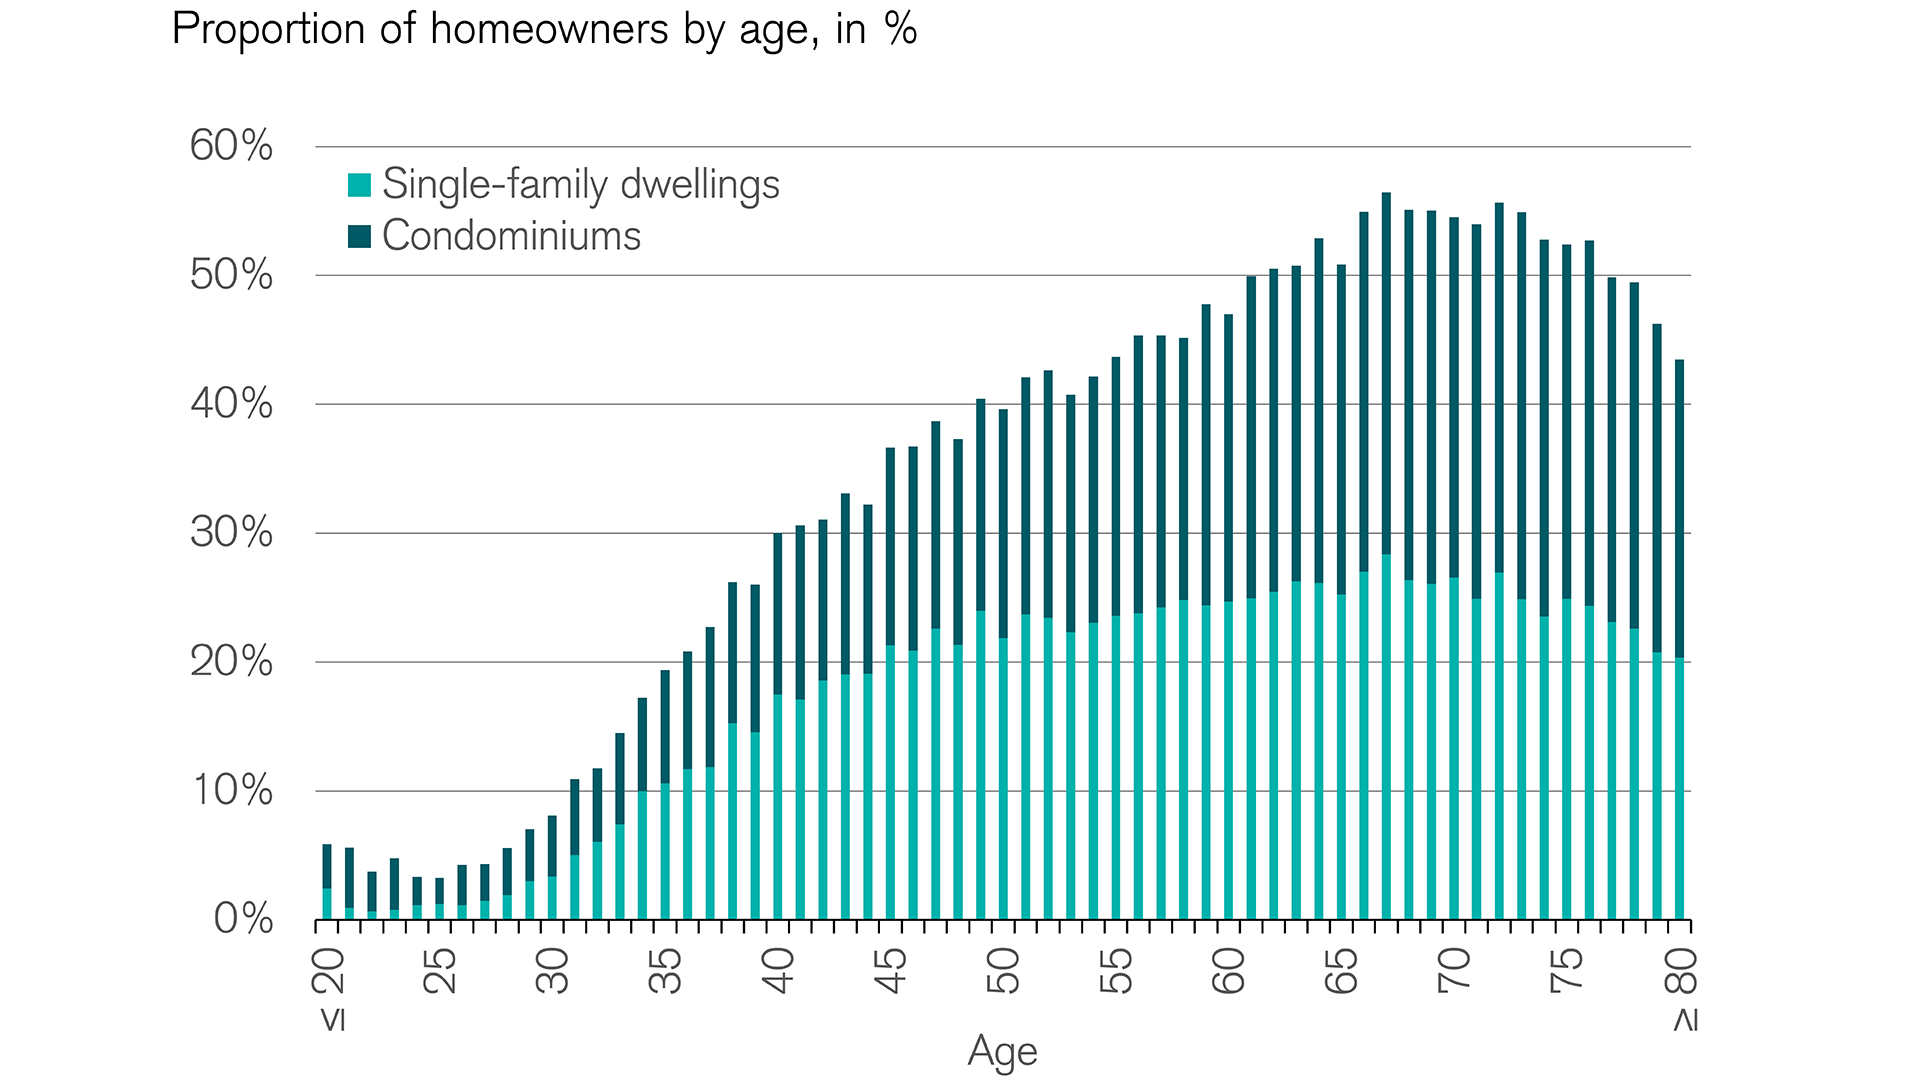 Only from age 30 does homeownership become an increasingly important topic